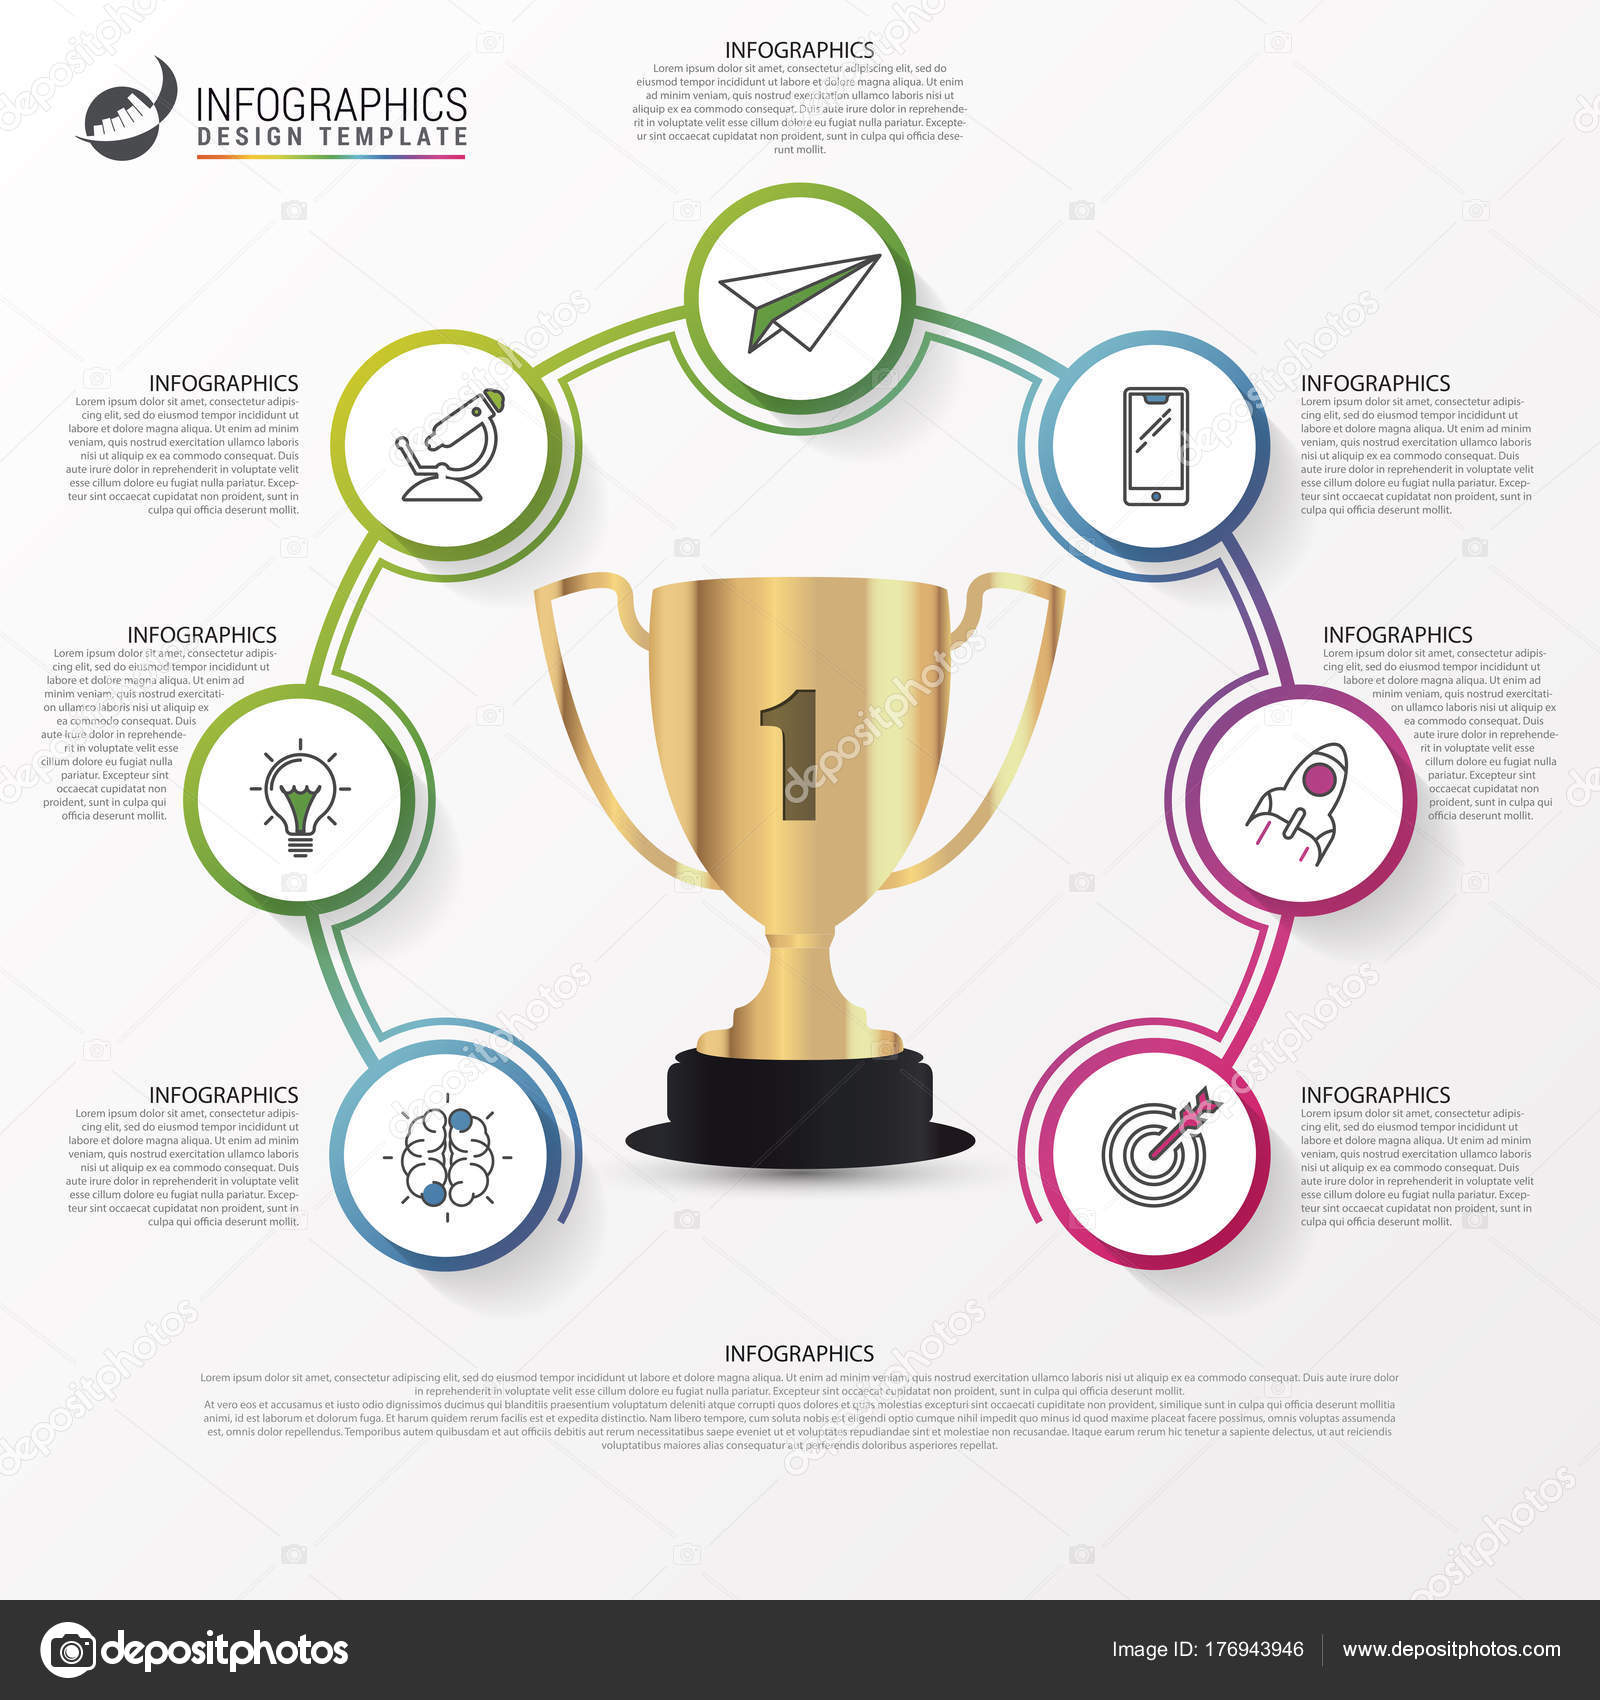 infographic design template success concept with trophy stock